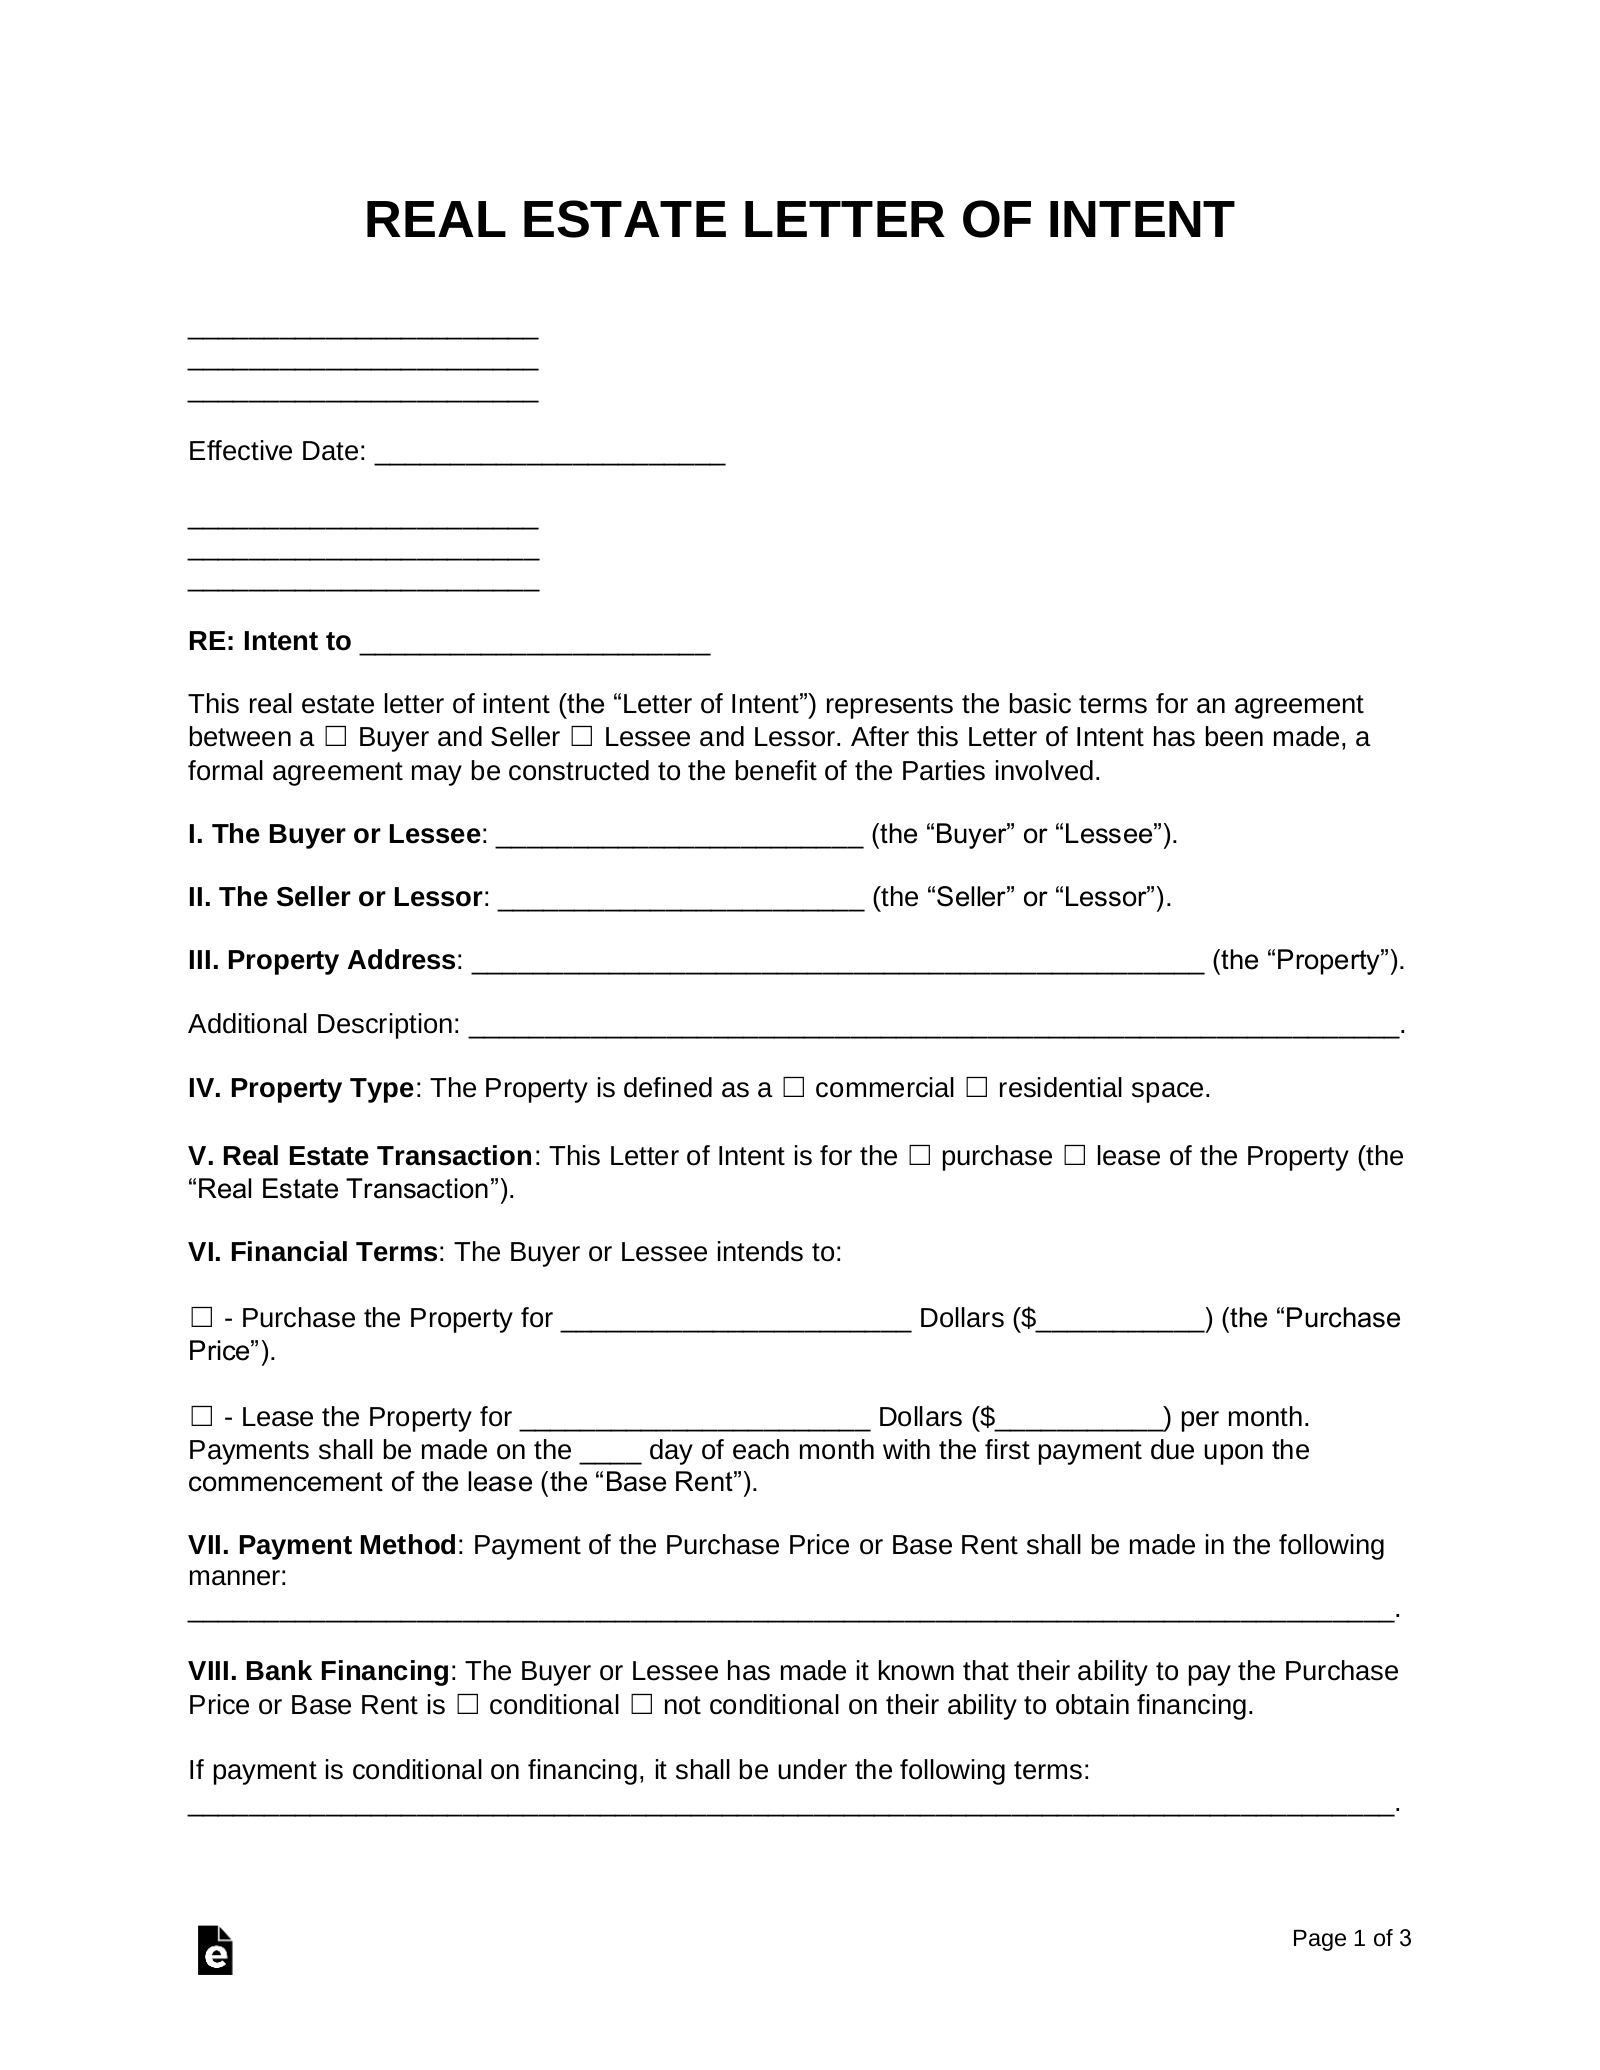 Free Real Estate Letter Of Intent Purchase Or Lease Word Pdf